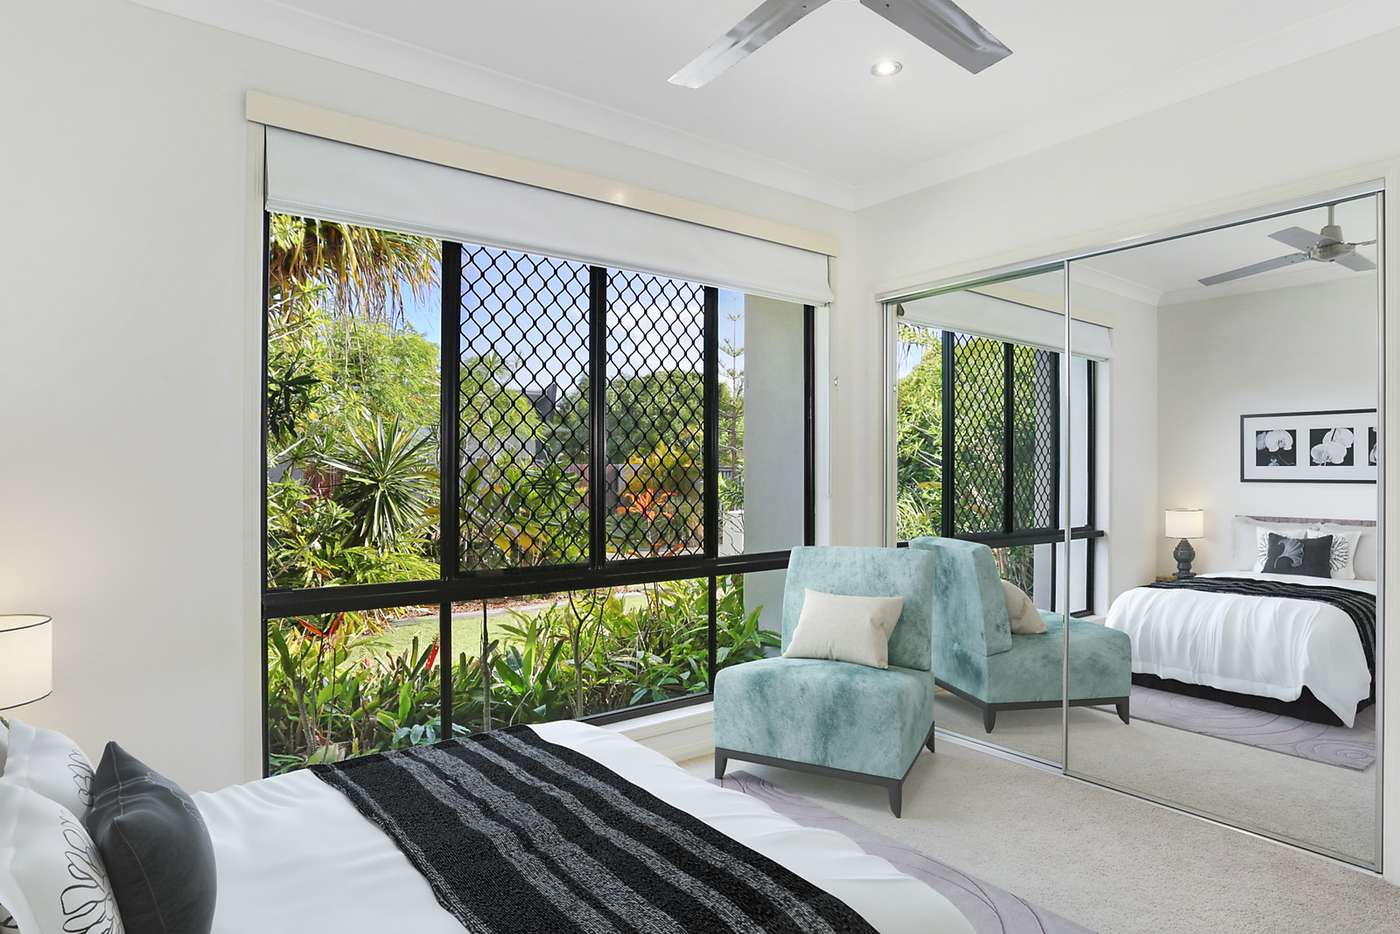 Sixth view of Homely house listing, 1 Bonaire Court, Parrearra QLD 4575